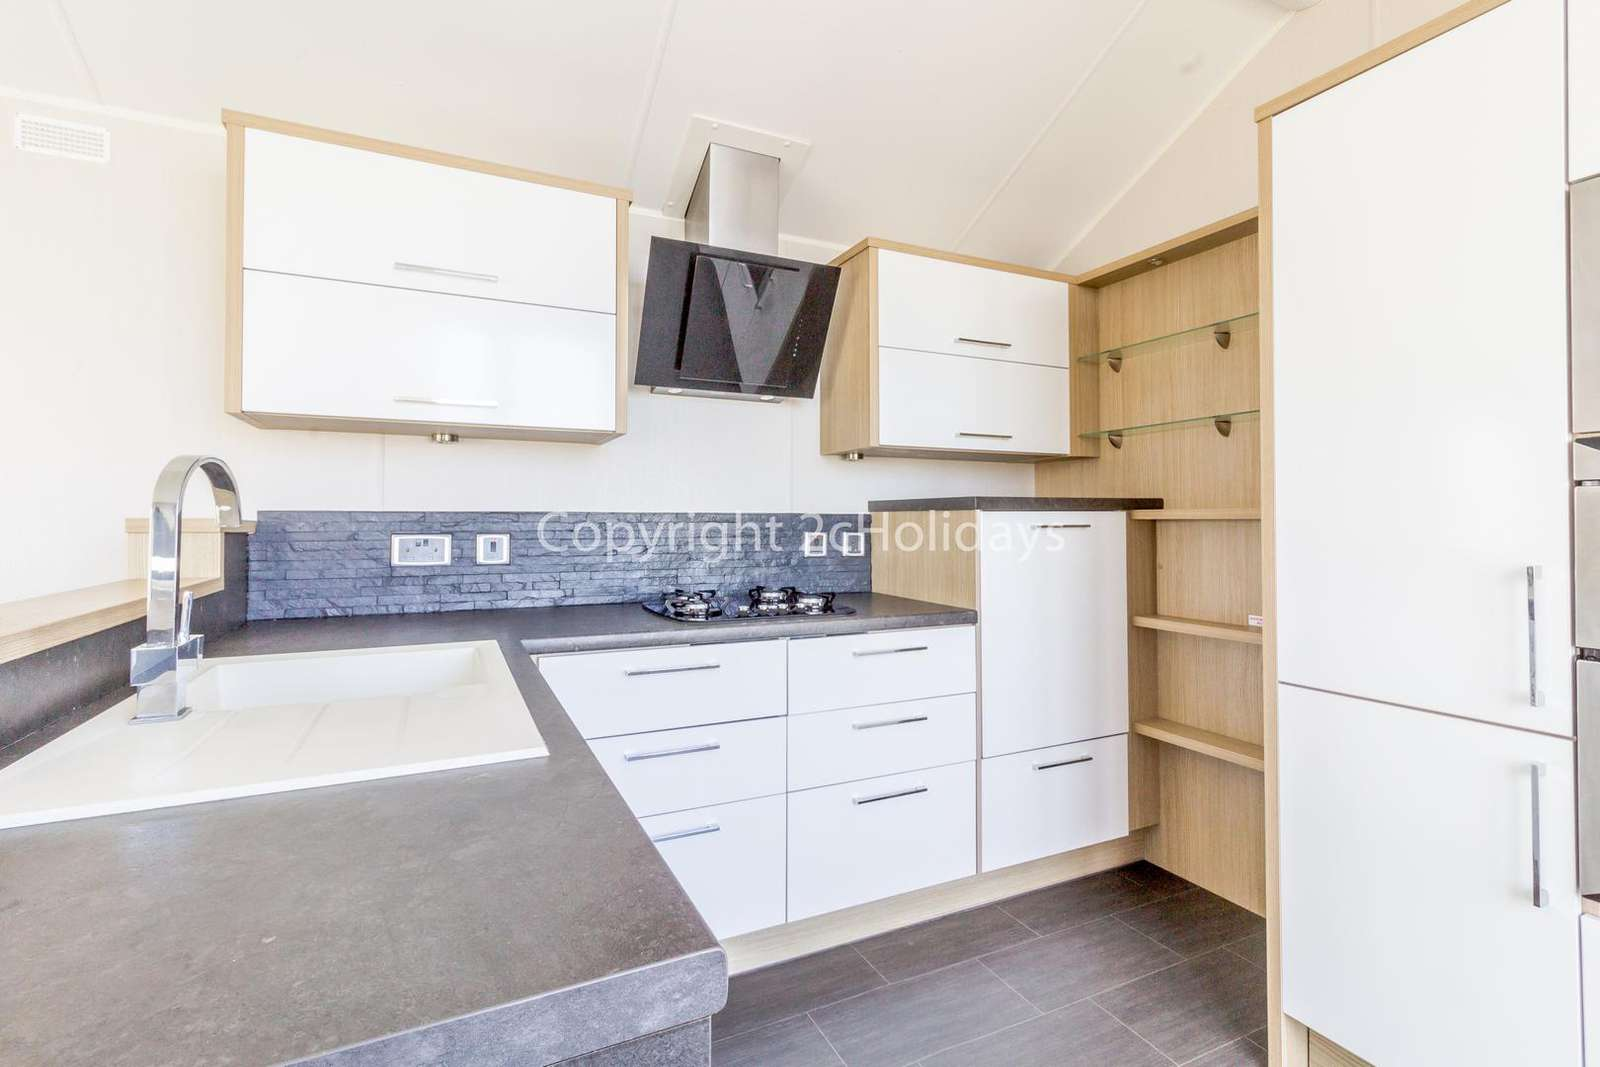 Fully equipped kitchen with full size cooker and washing machine!